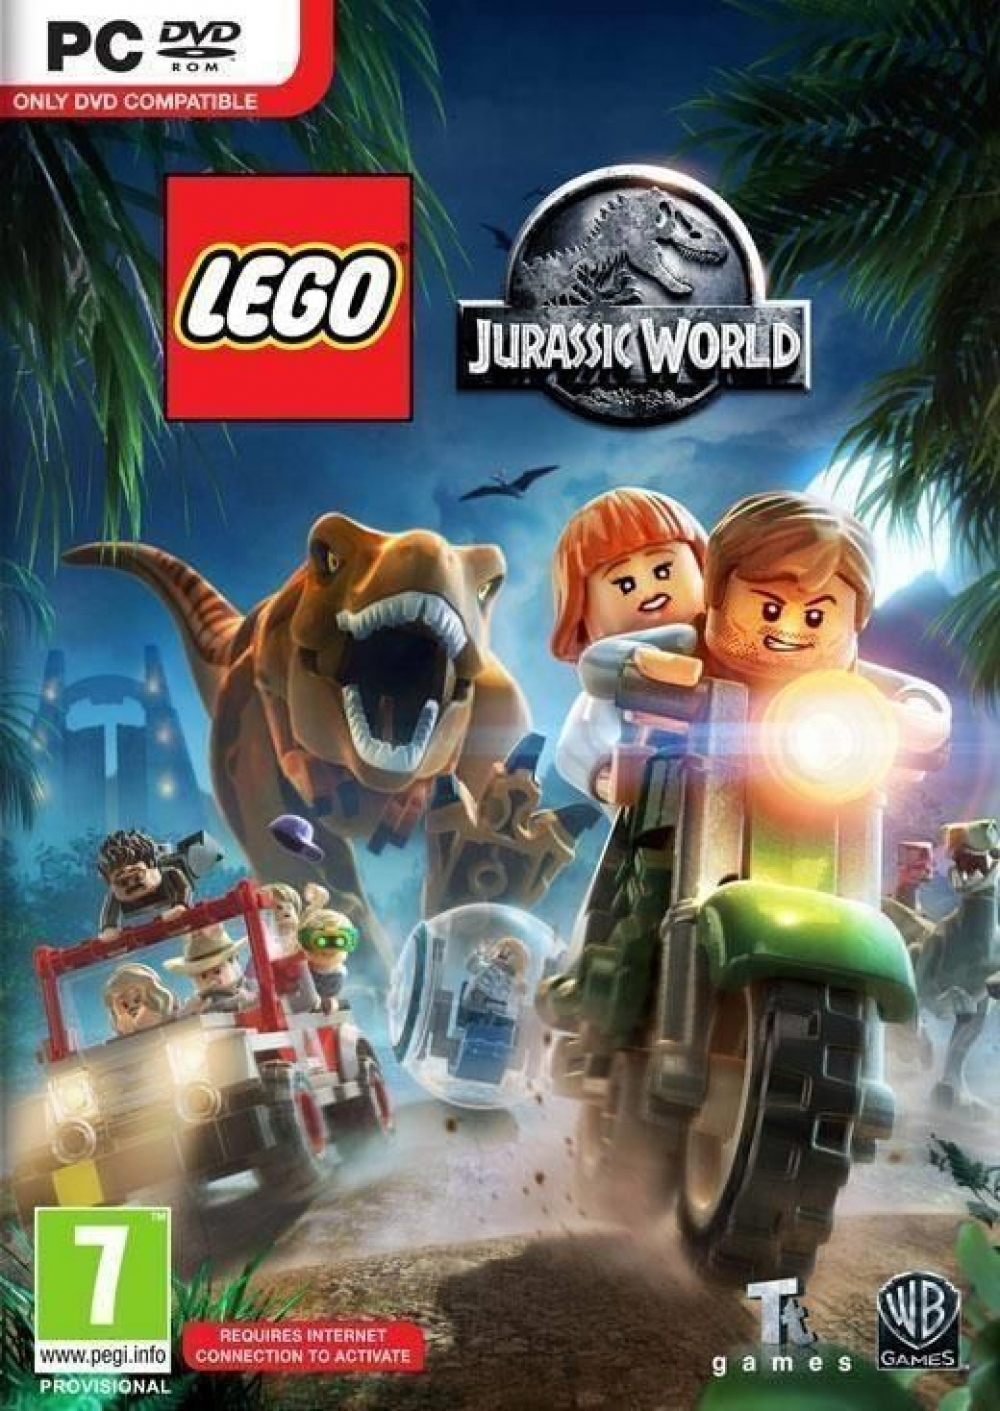 Joc Lego Jurassic World pentru PC imagine